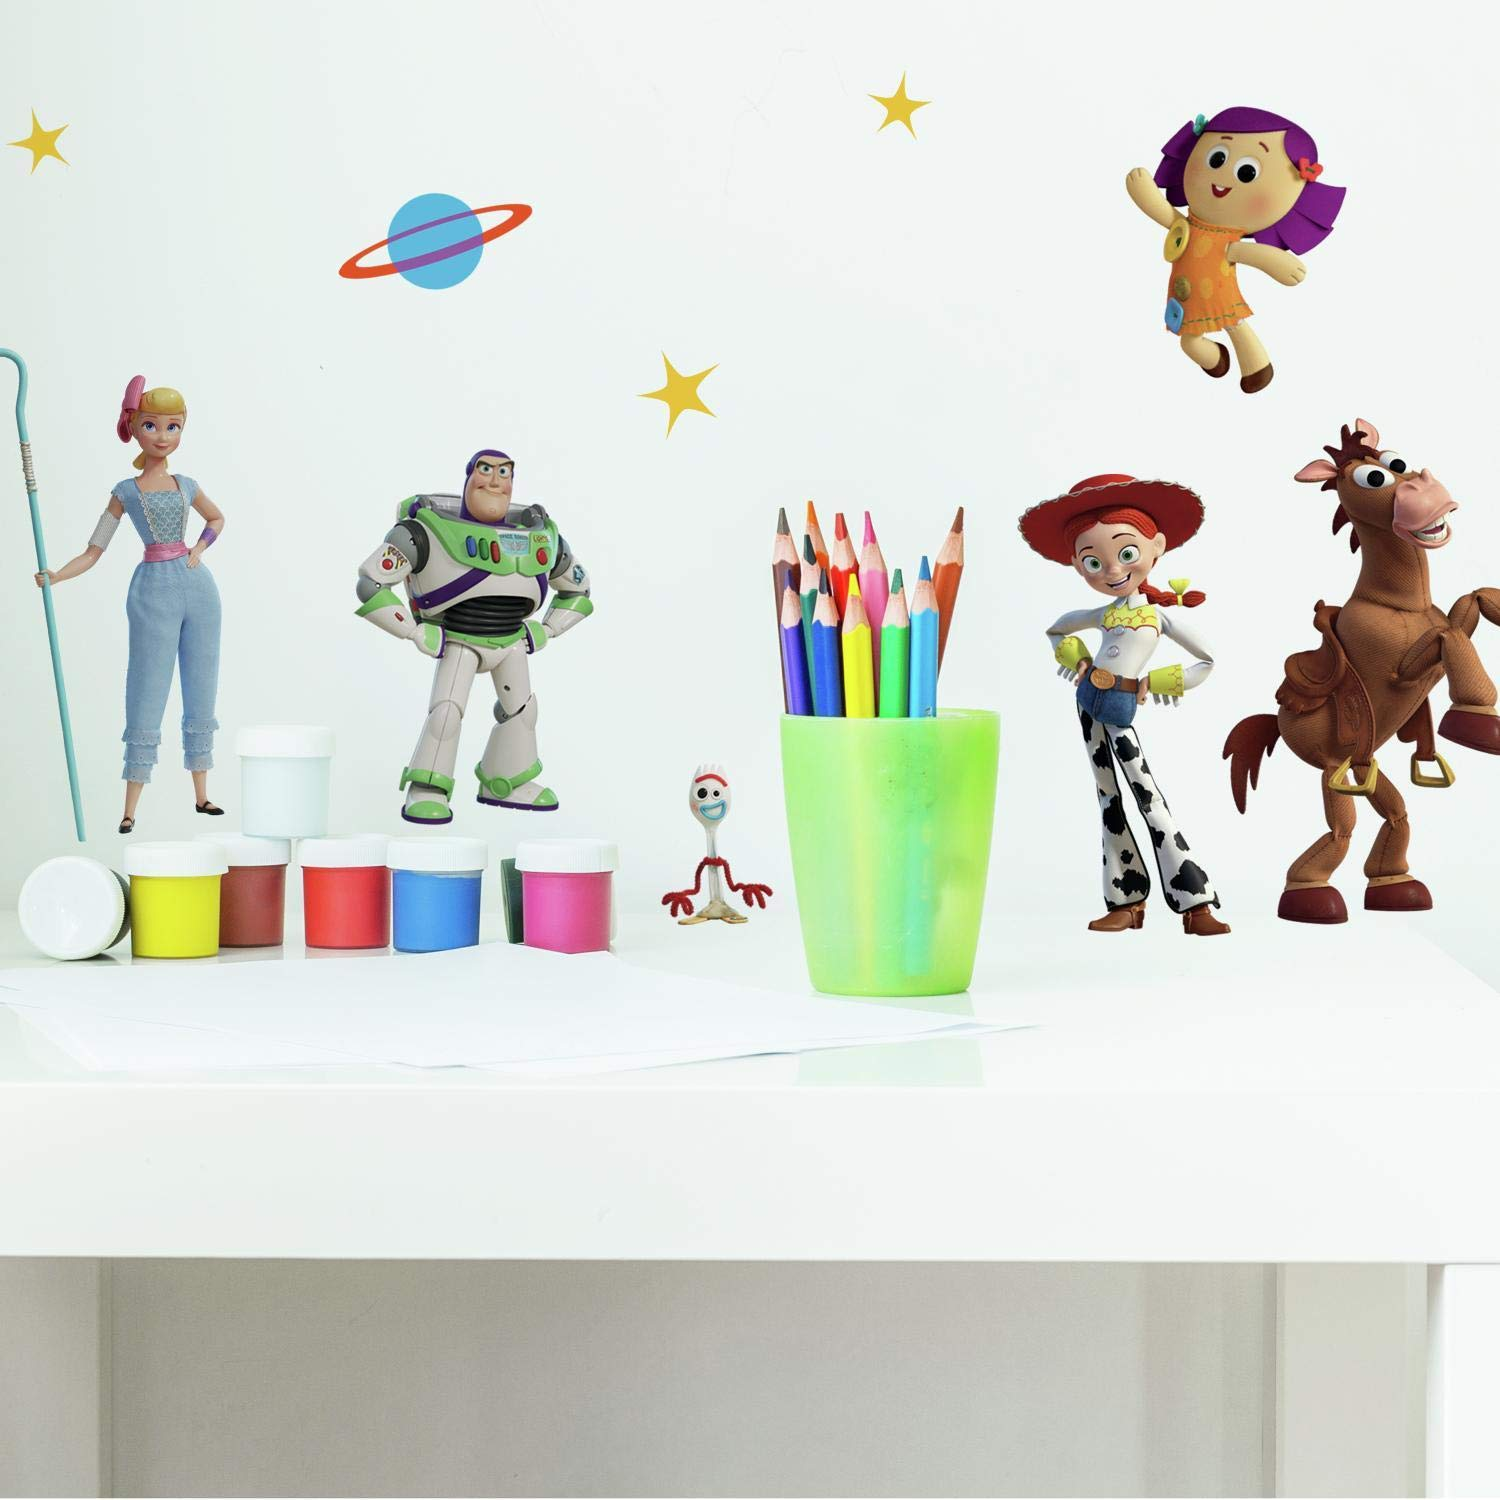 RoomMates Toy Story 4 Peel and Stick Wall Decals, green, blue, yellow - RMK4008SCS by RoomMates